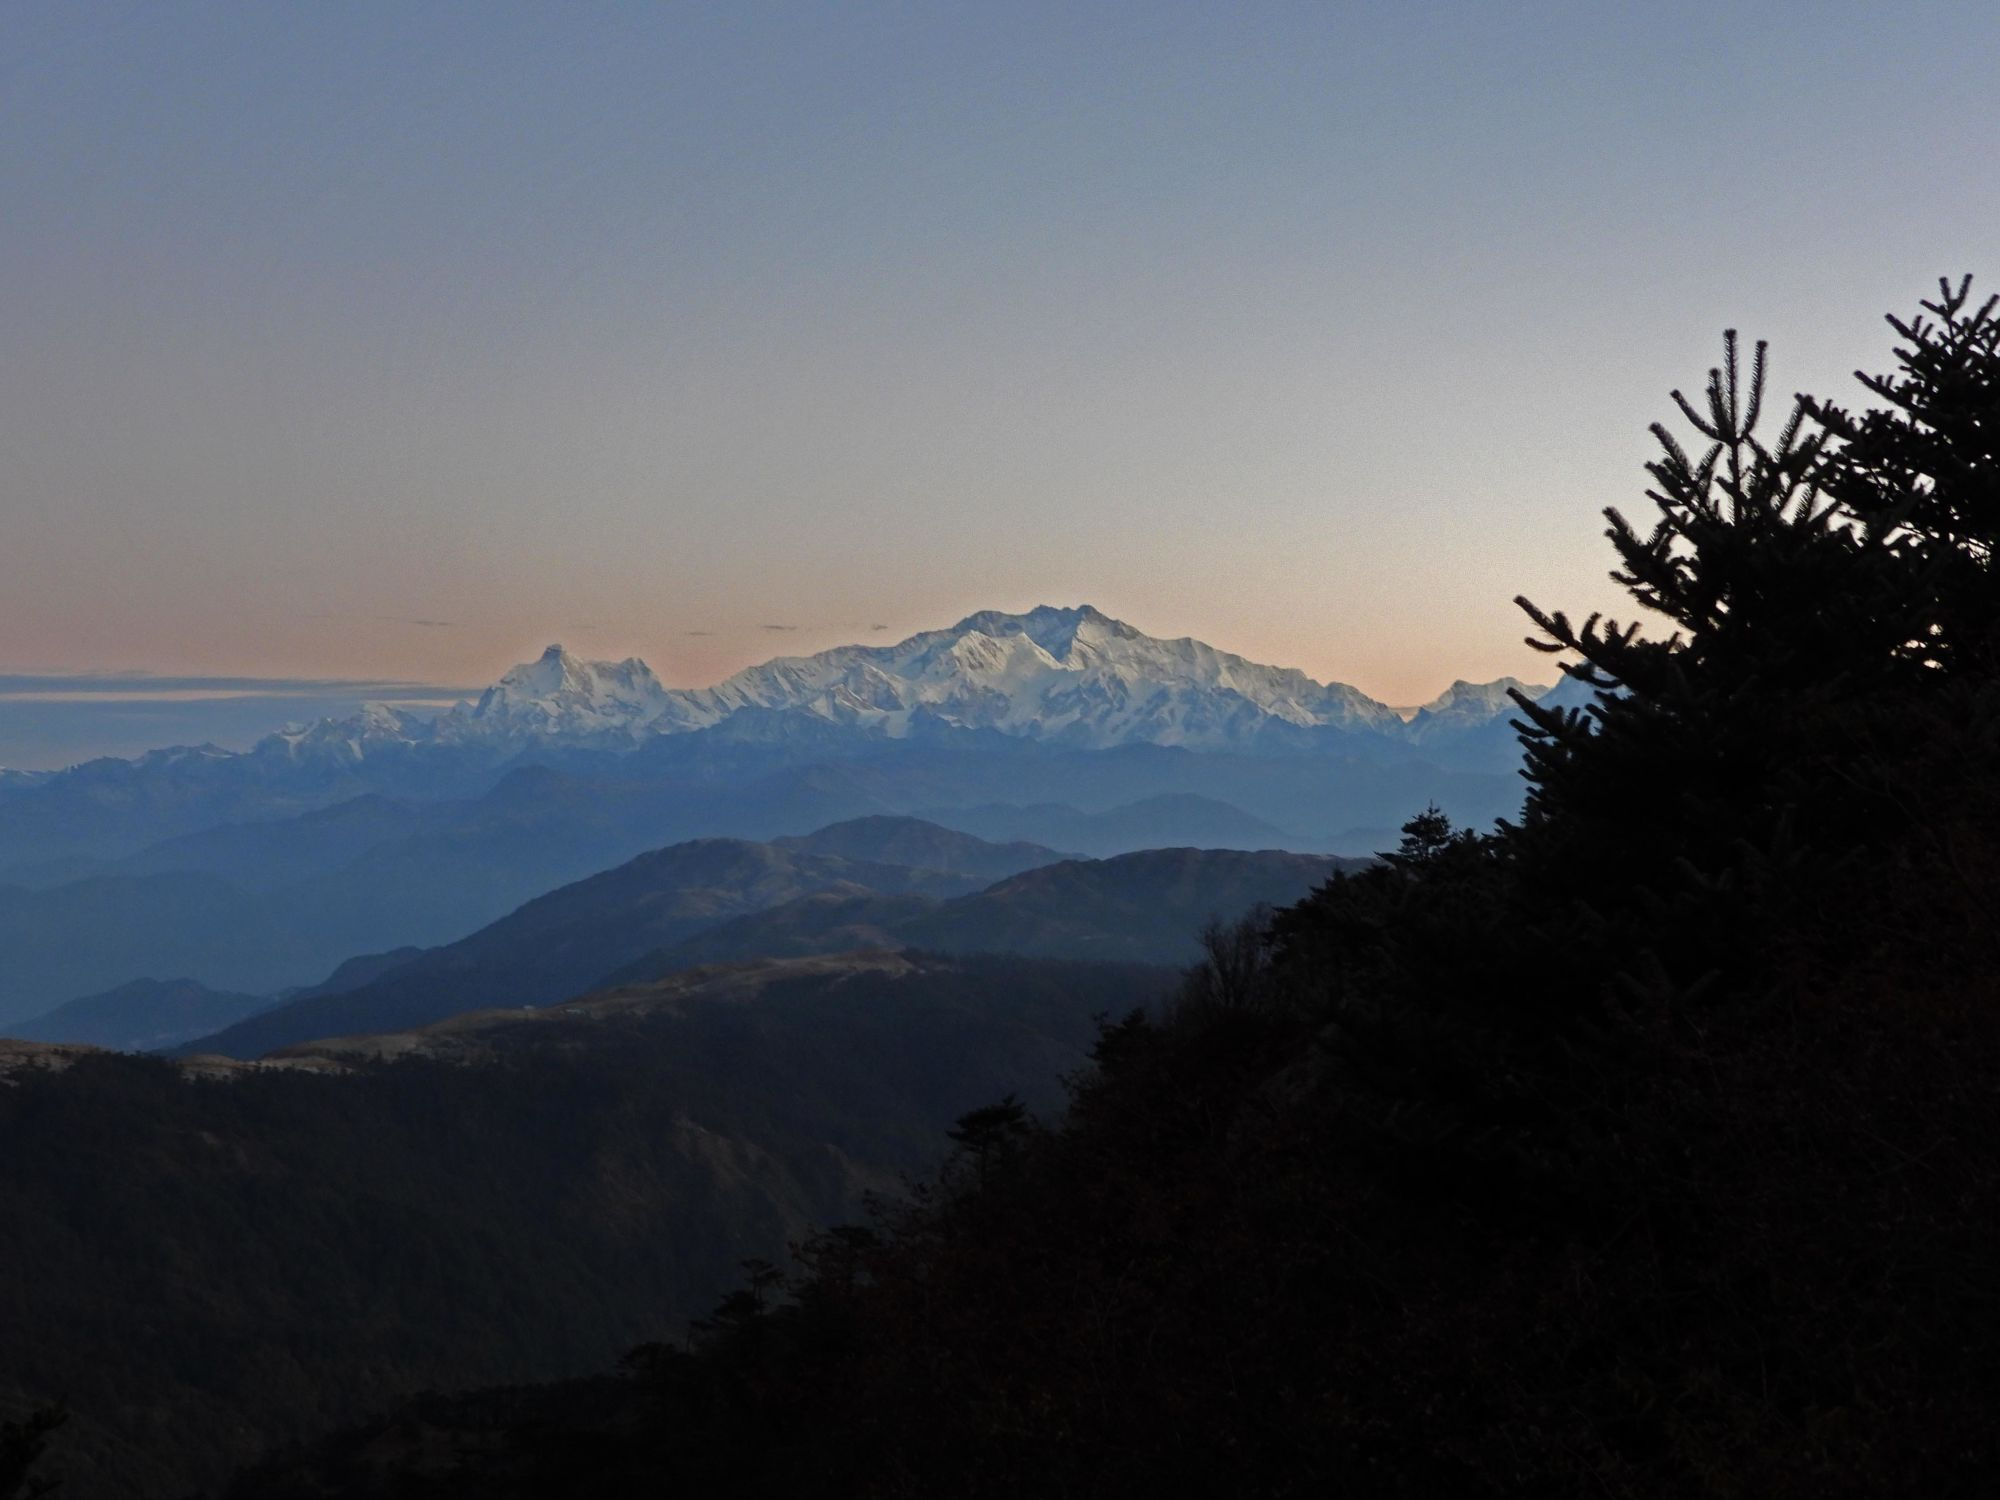 Kanchendzonga sunrise from Singalila on our Panda search